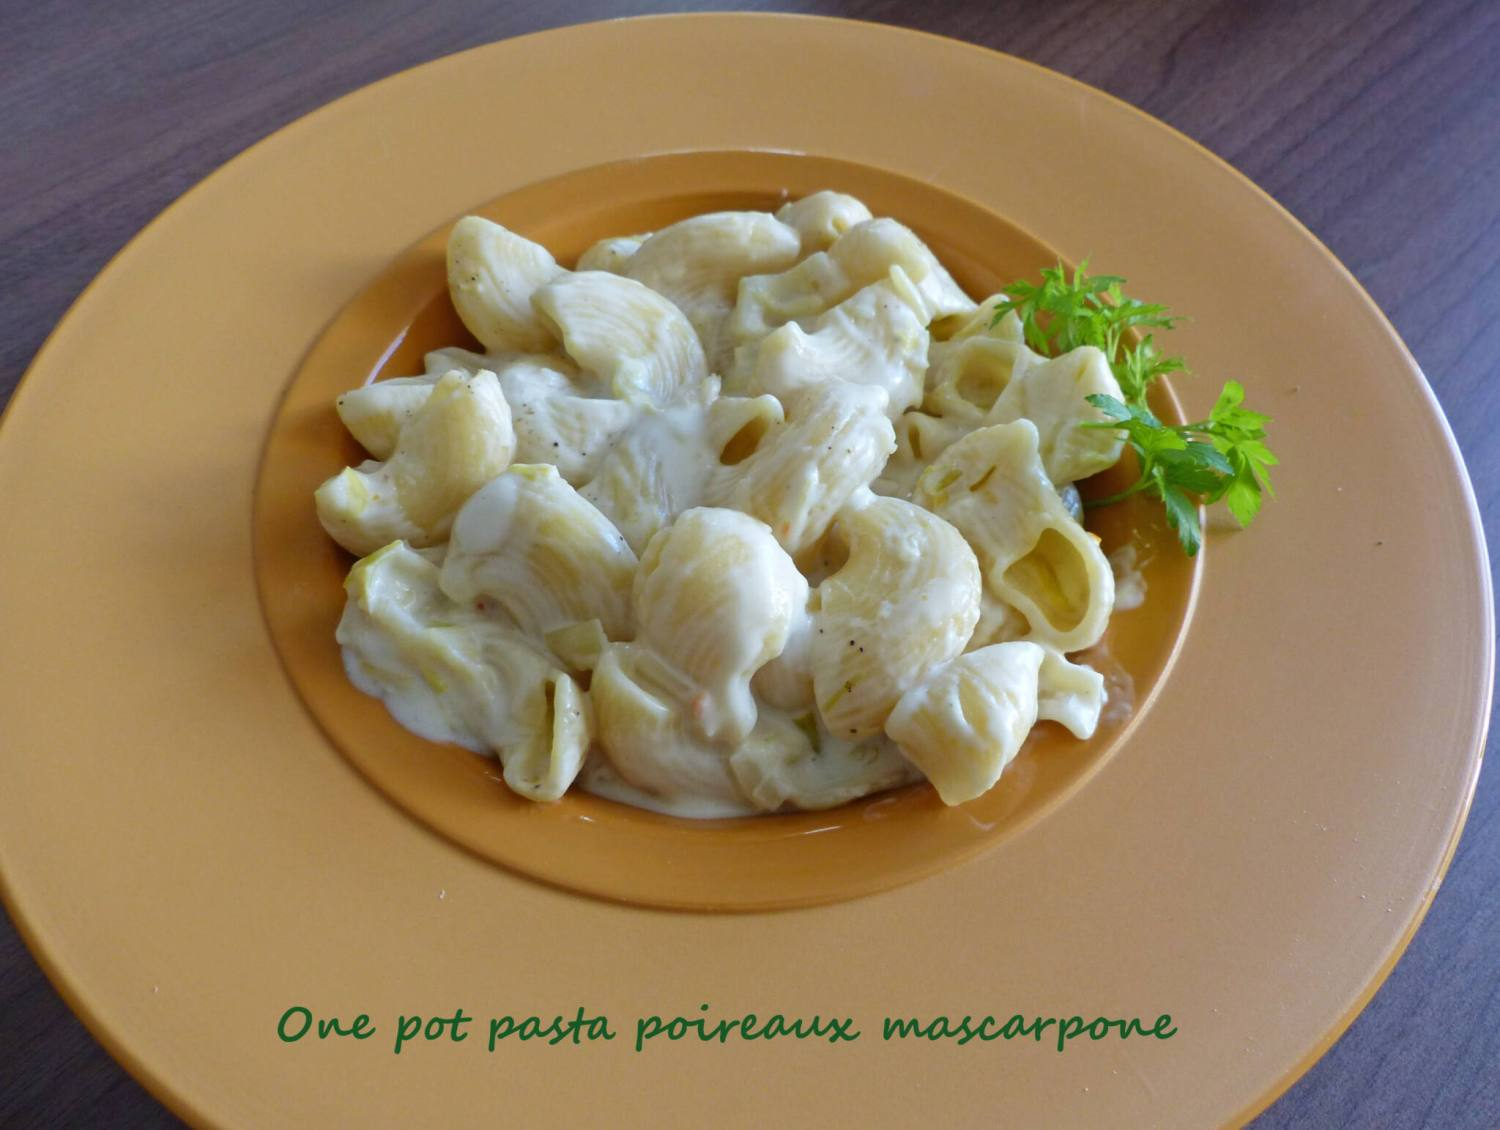 One pot pasta poireaux mascarpone P1240329 R